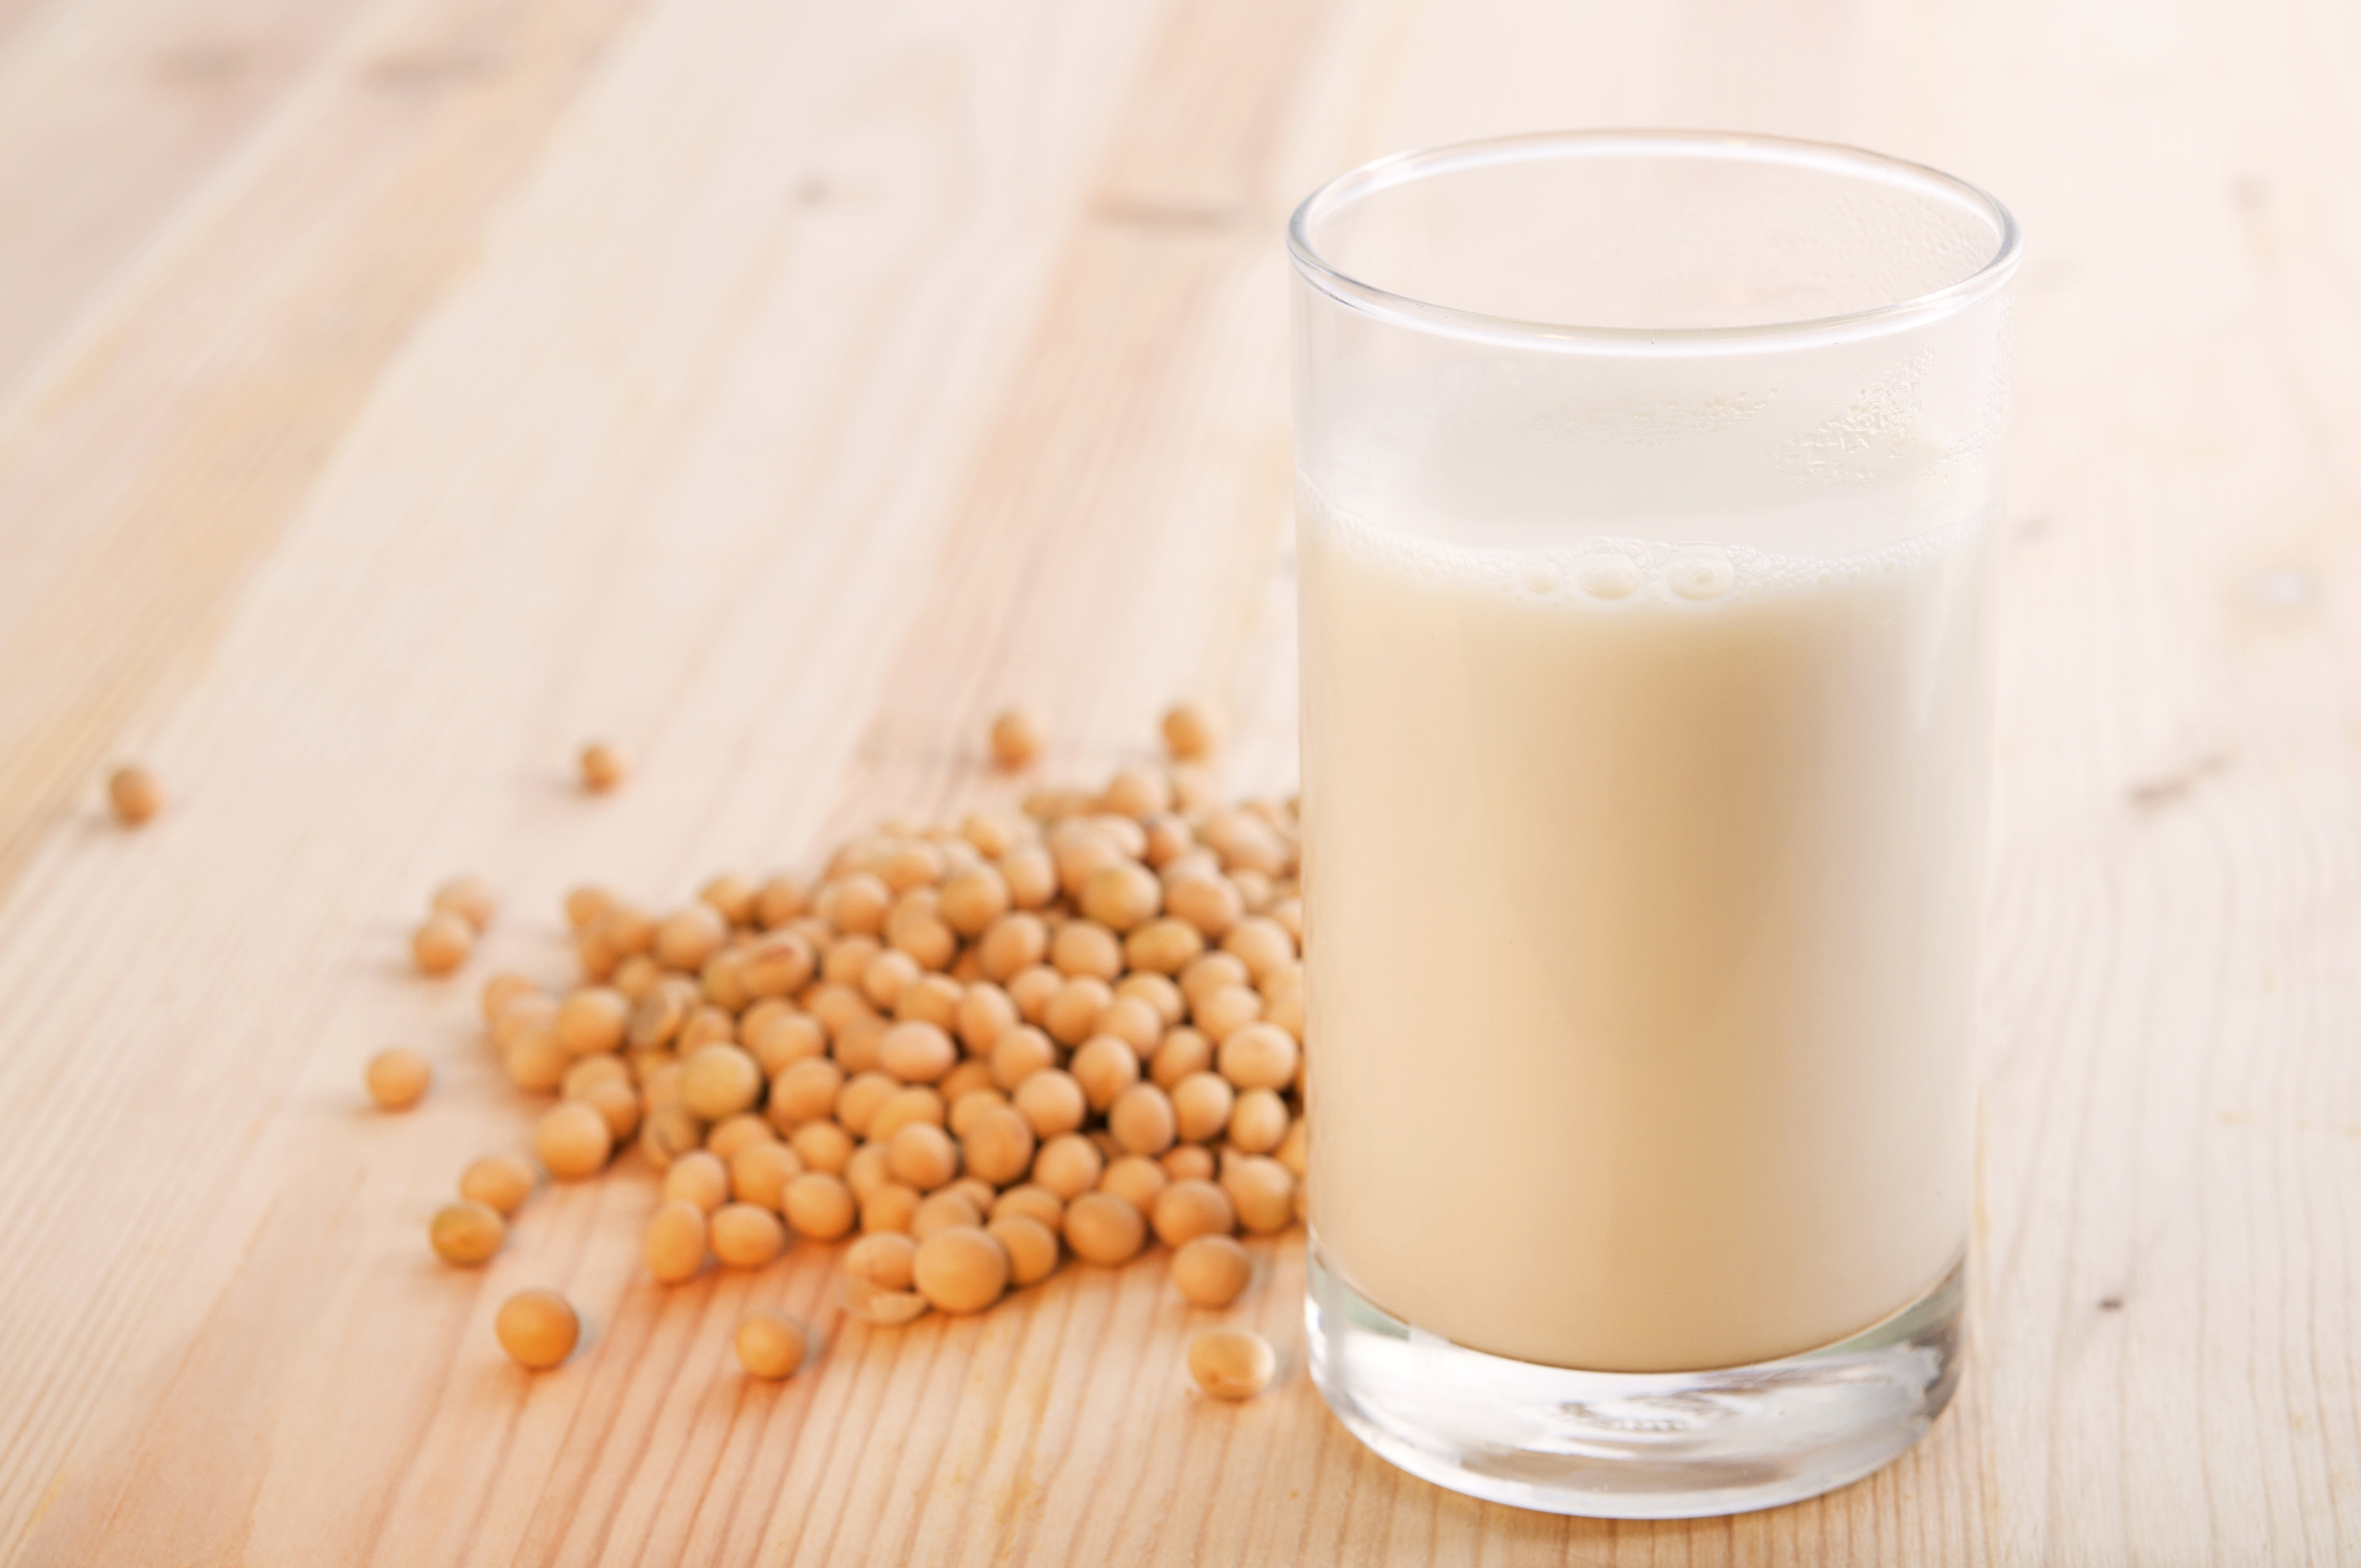 how to make to rtillas how to make crou to ns how to make soy milk ...